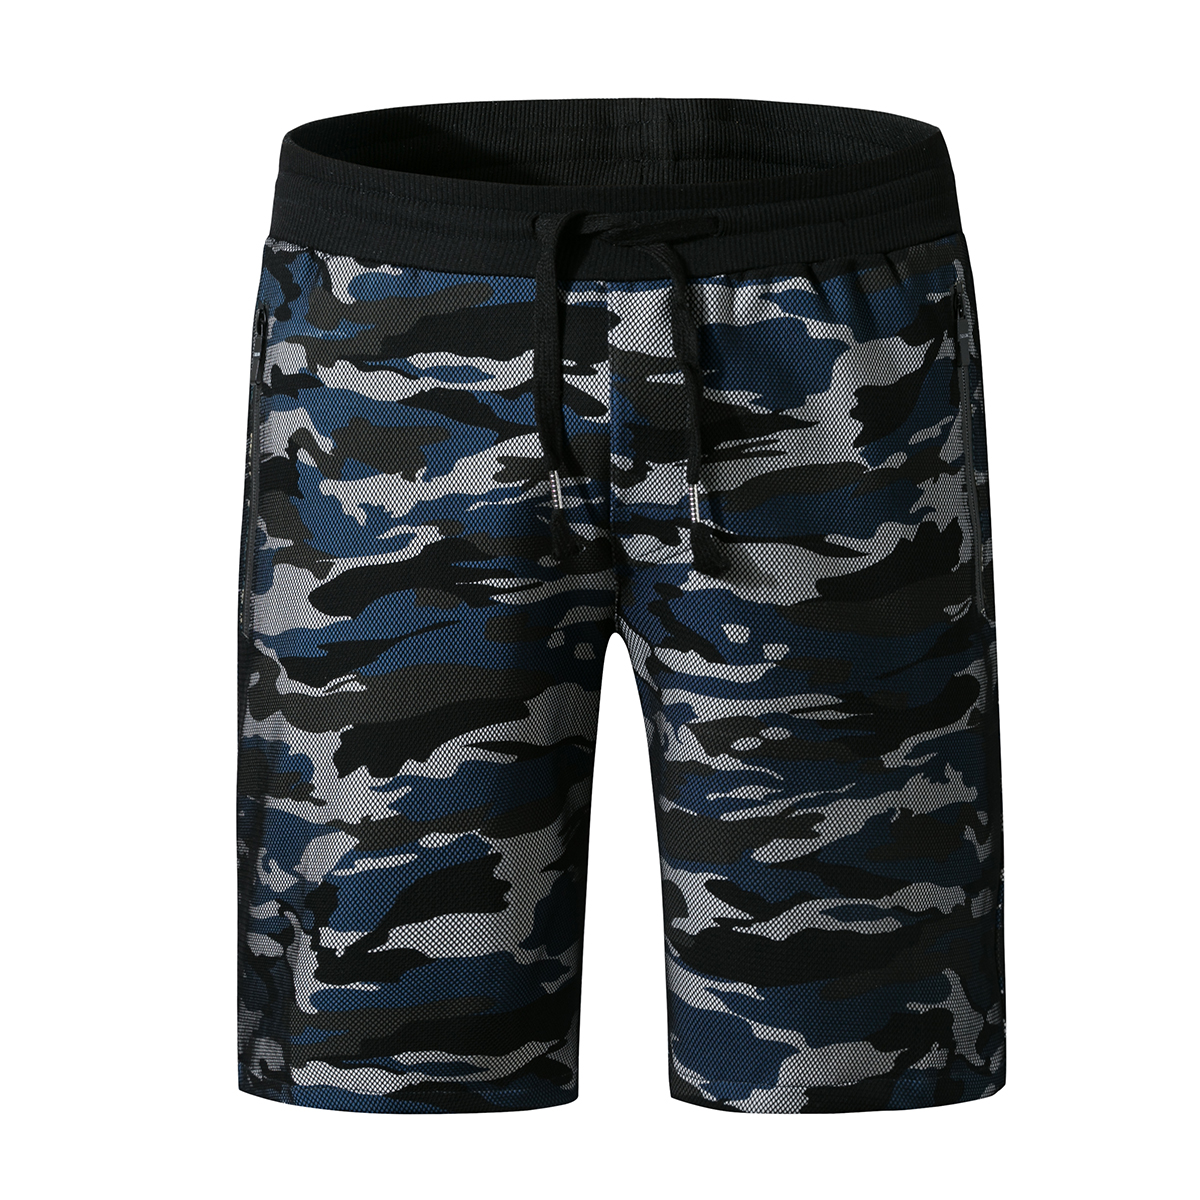 Male   Shorts   Camouflage Quick Dry Beachwear Swim   Shorts   Men Trunks Military Beach   Board     Shorts   Mens Running Sports Swimming   Short